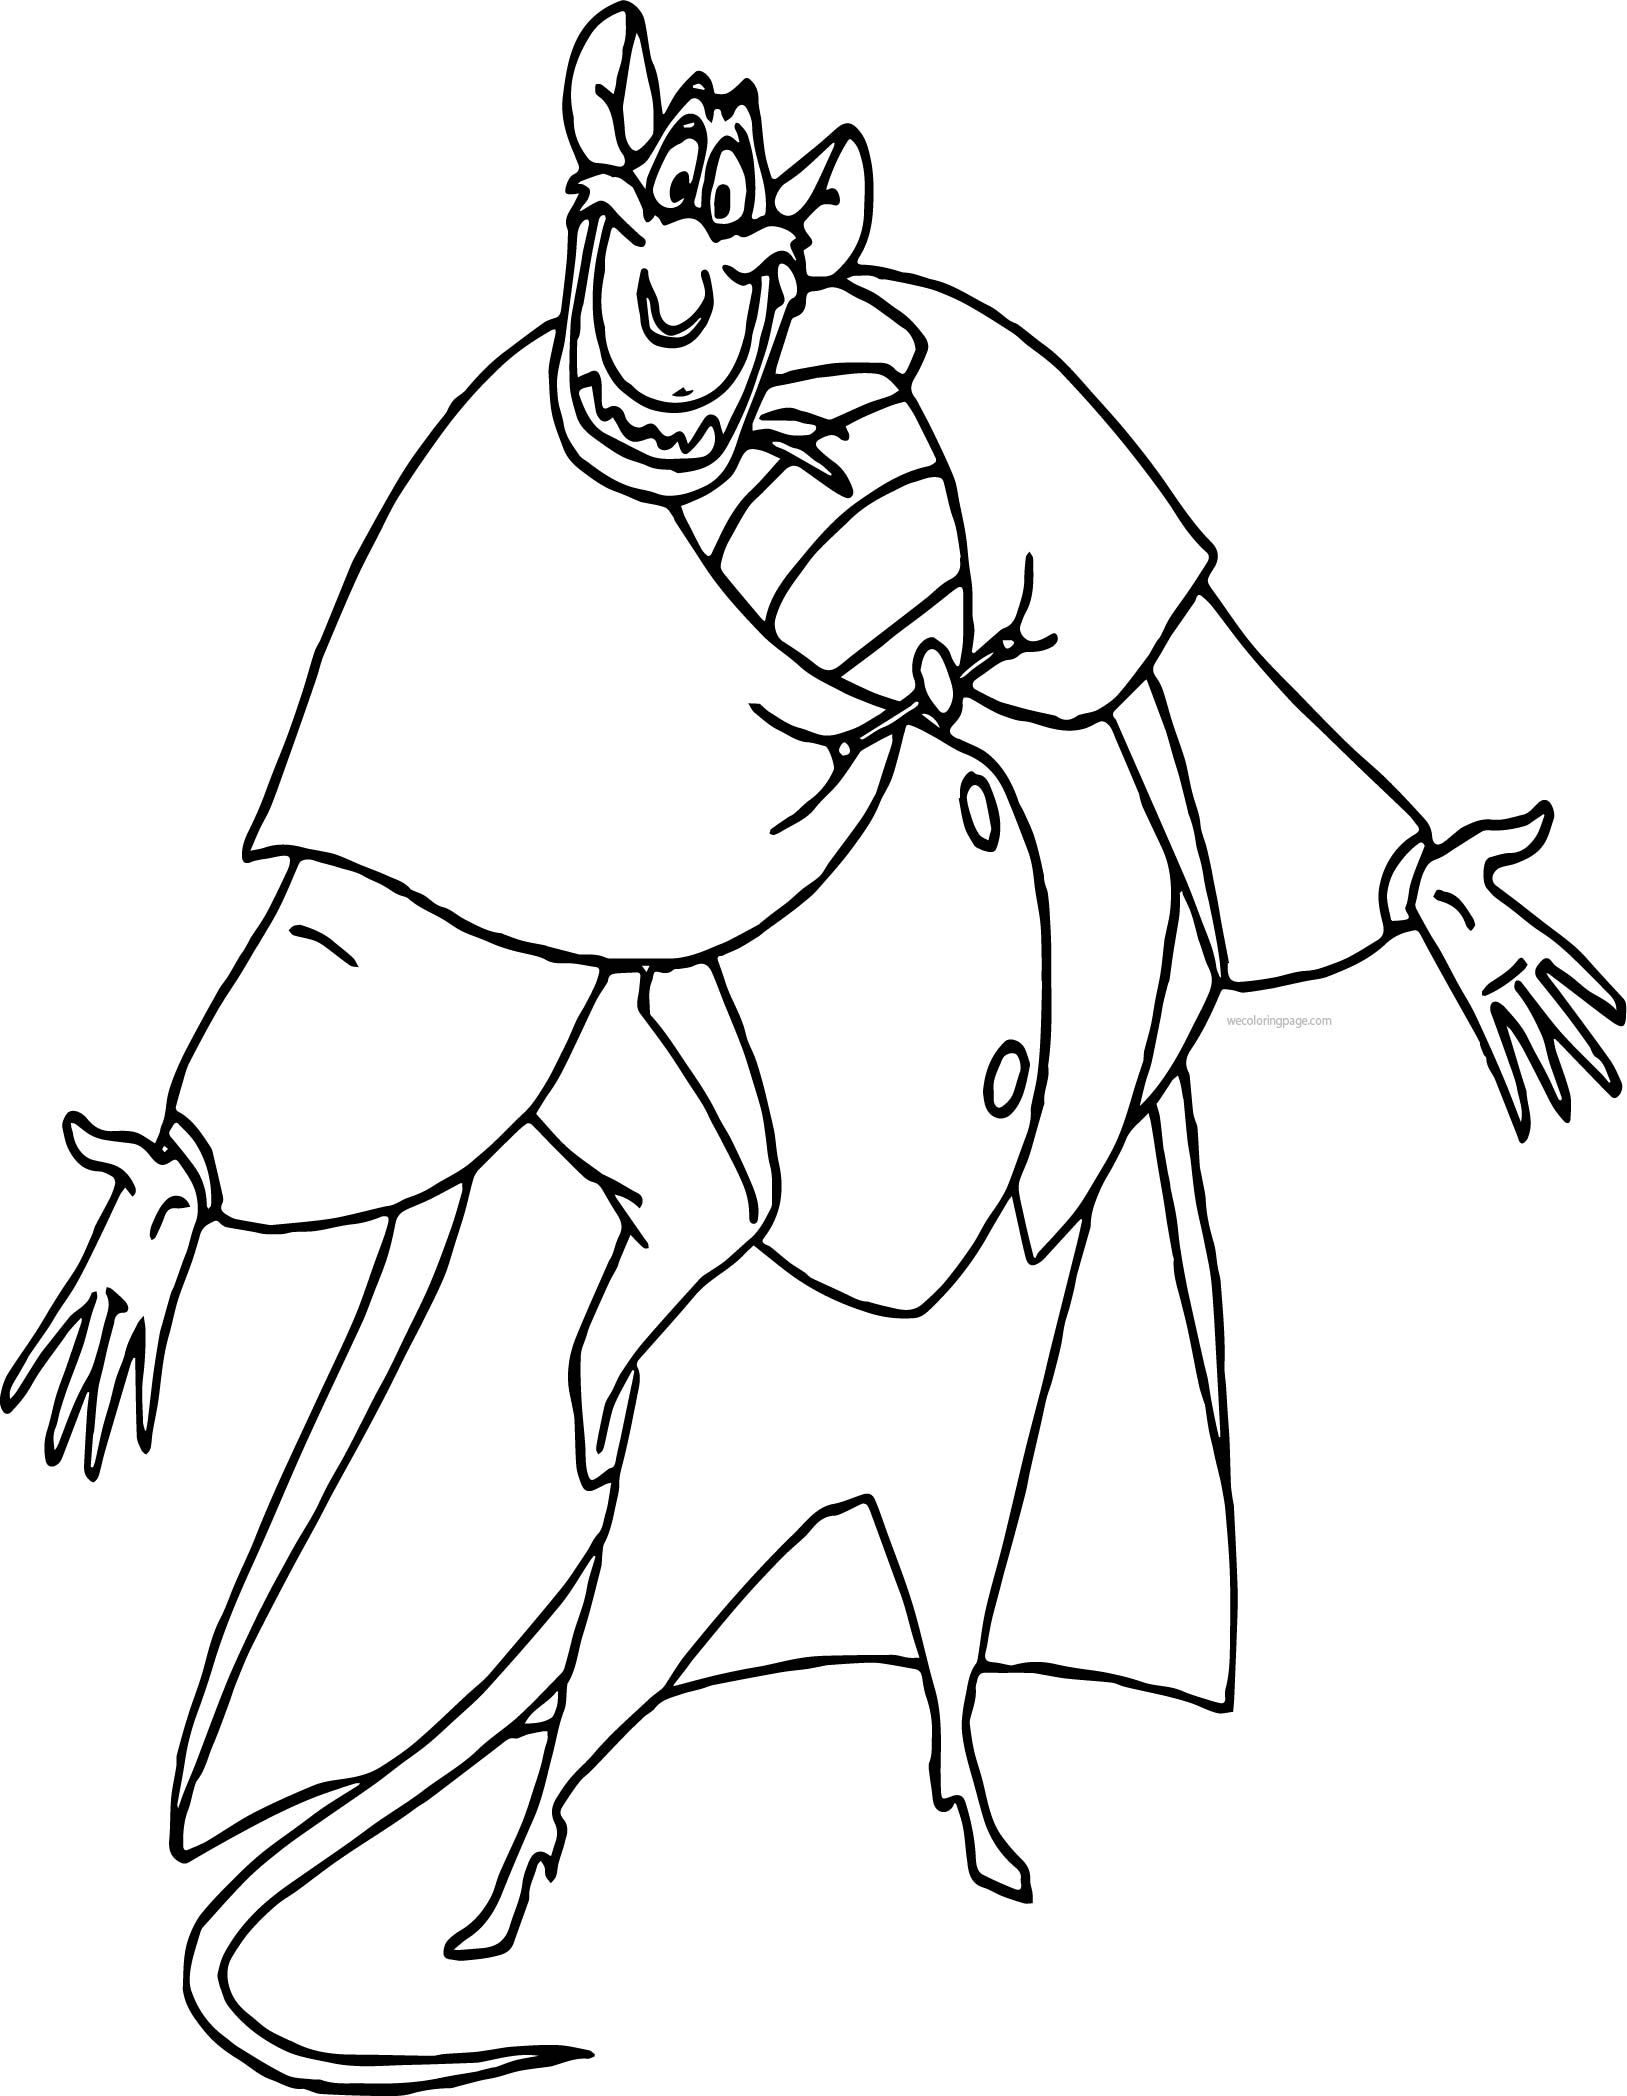 The Great Mouse Detective Ratigan Cartoon Coloring Pages Cartoon